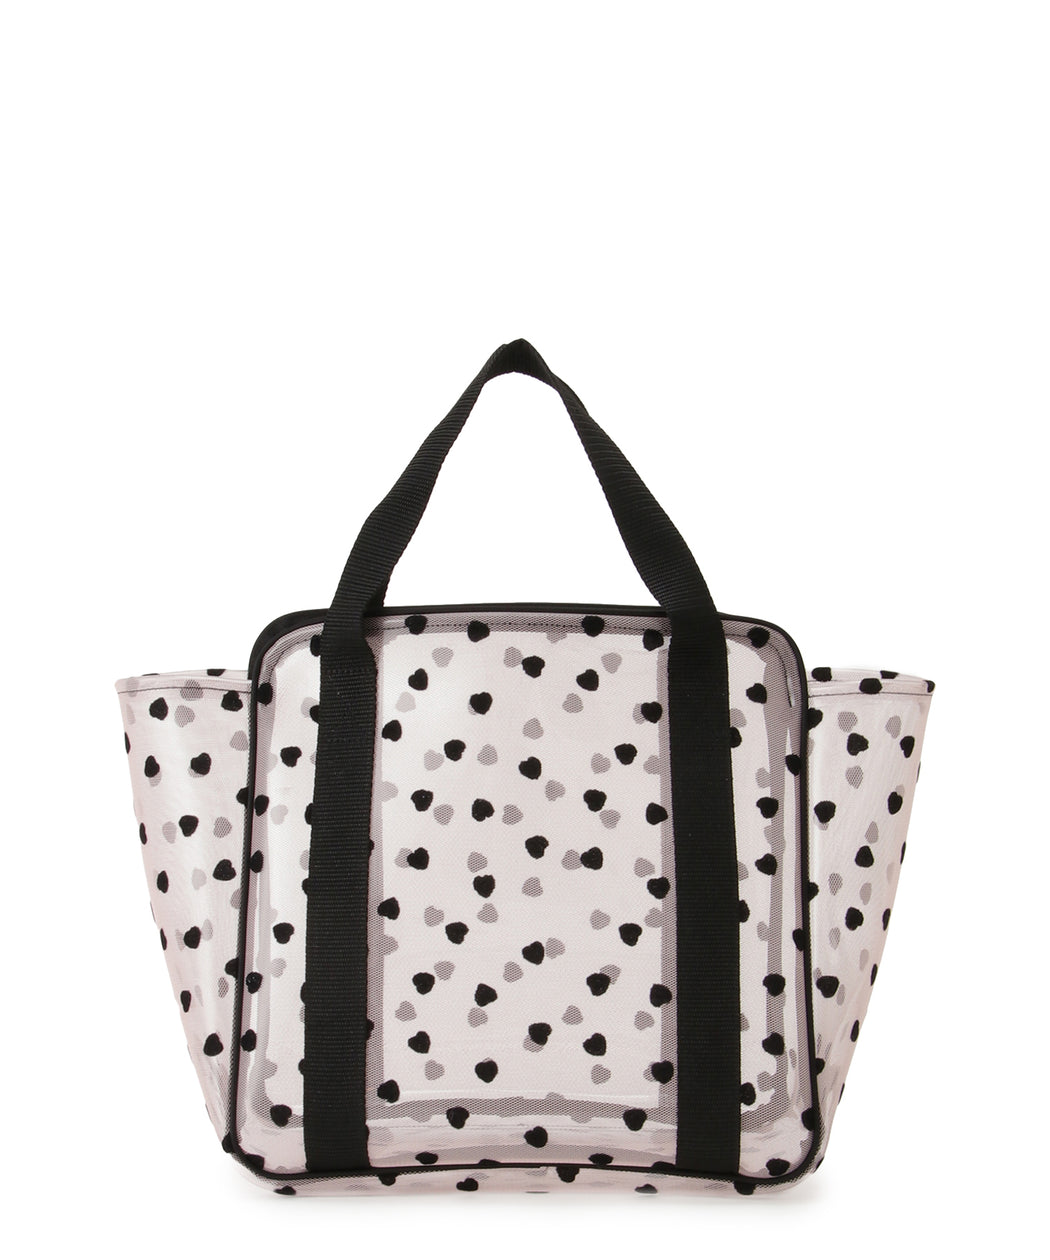 Flocked tulle / pvc tote